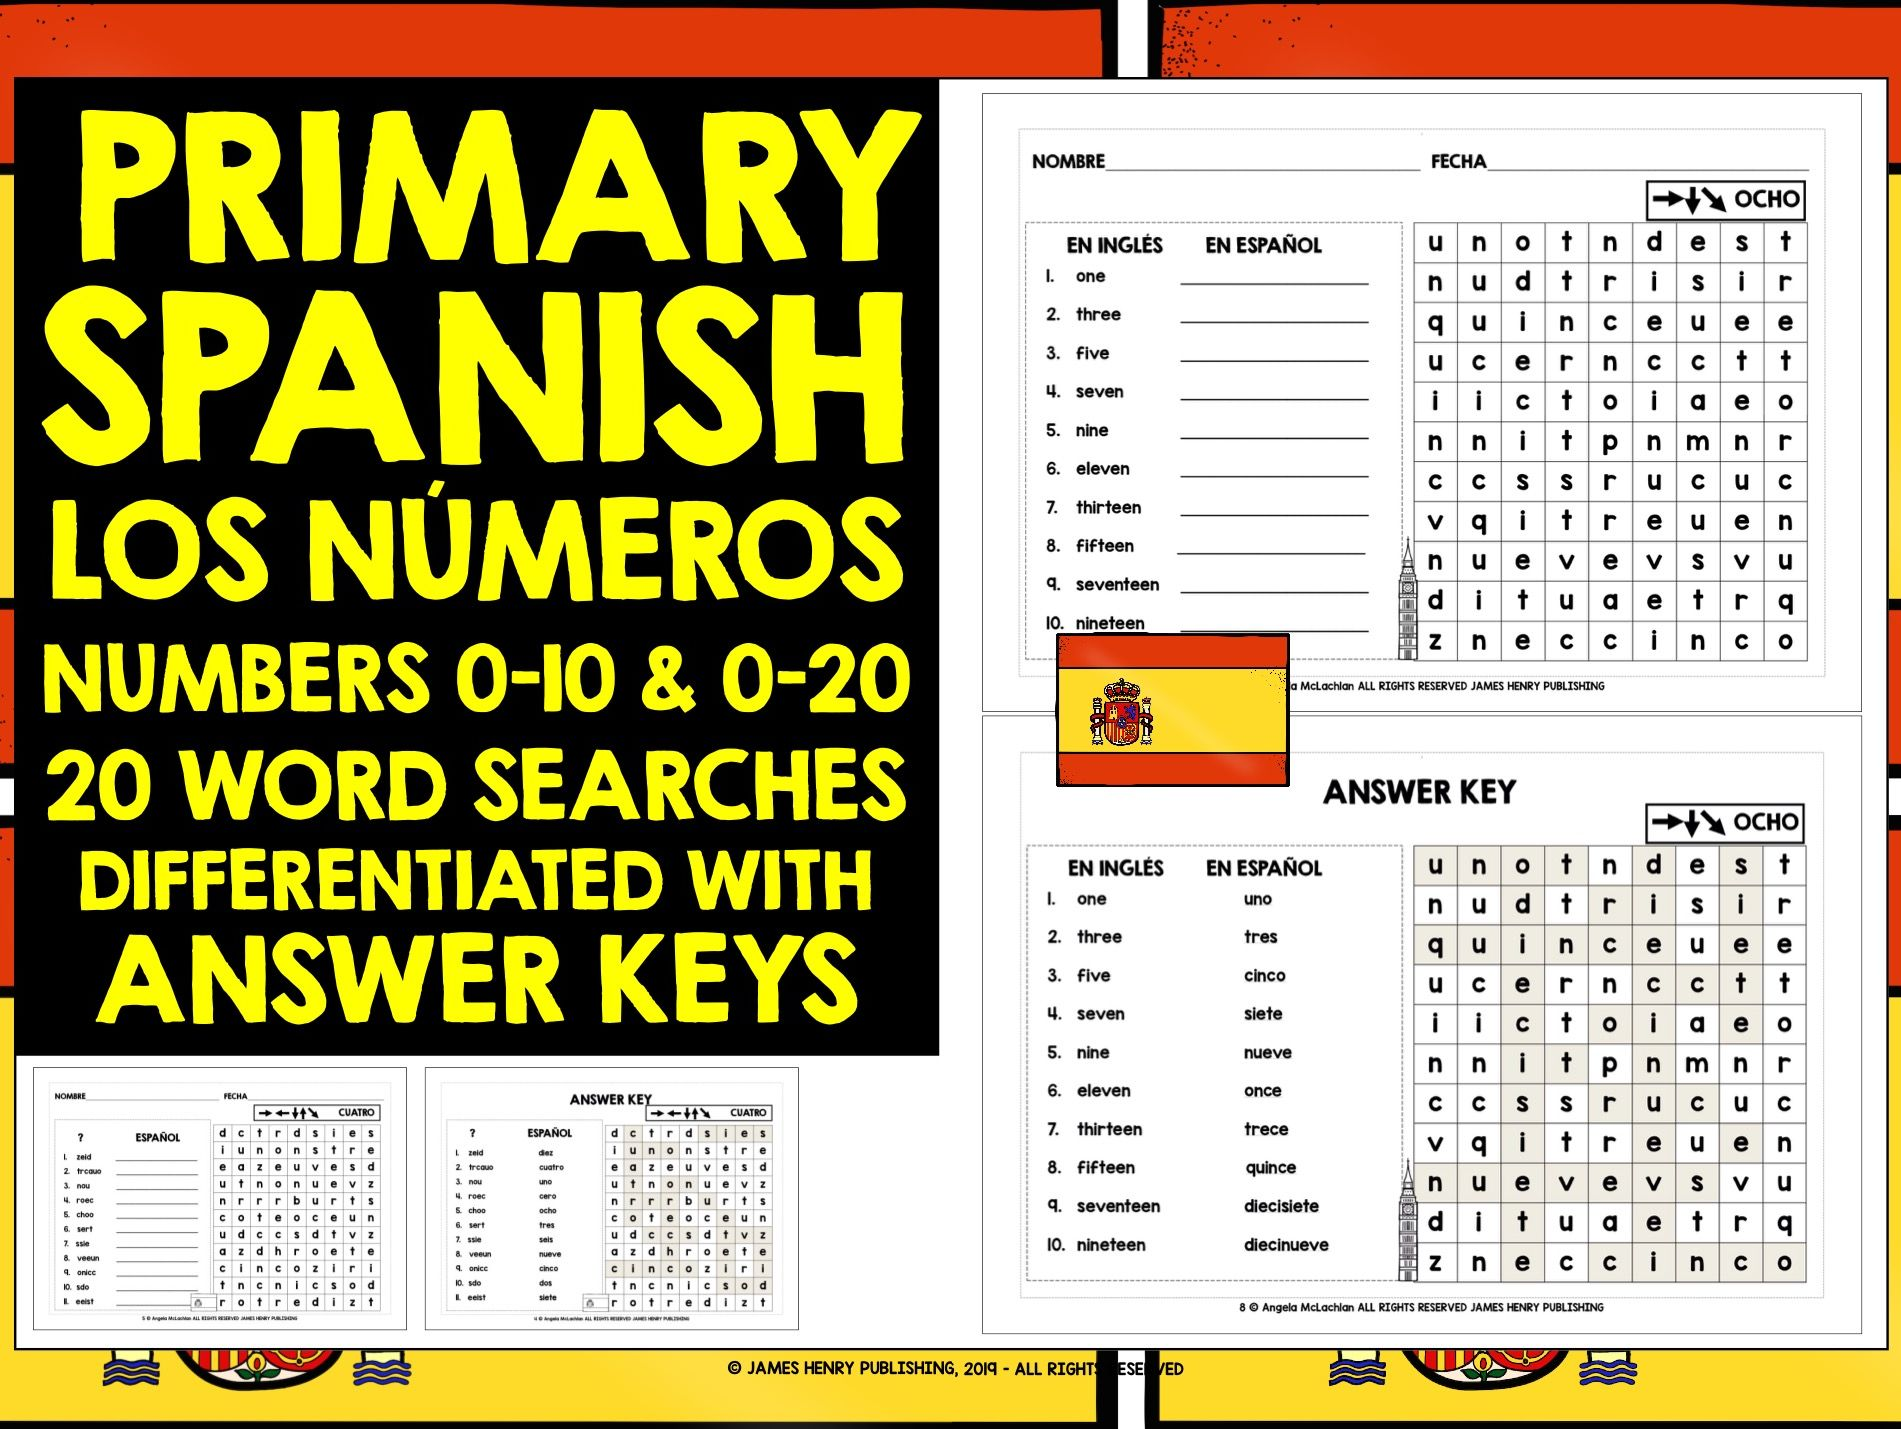 PRIMARY SPANISH NUMBERS 0-10 & 0-20 WORD SEARCHES